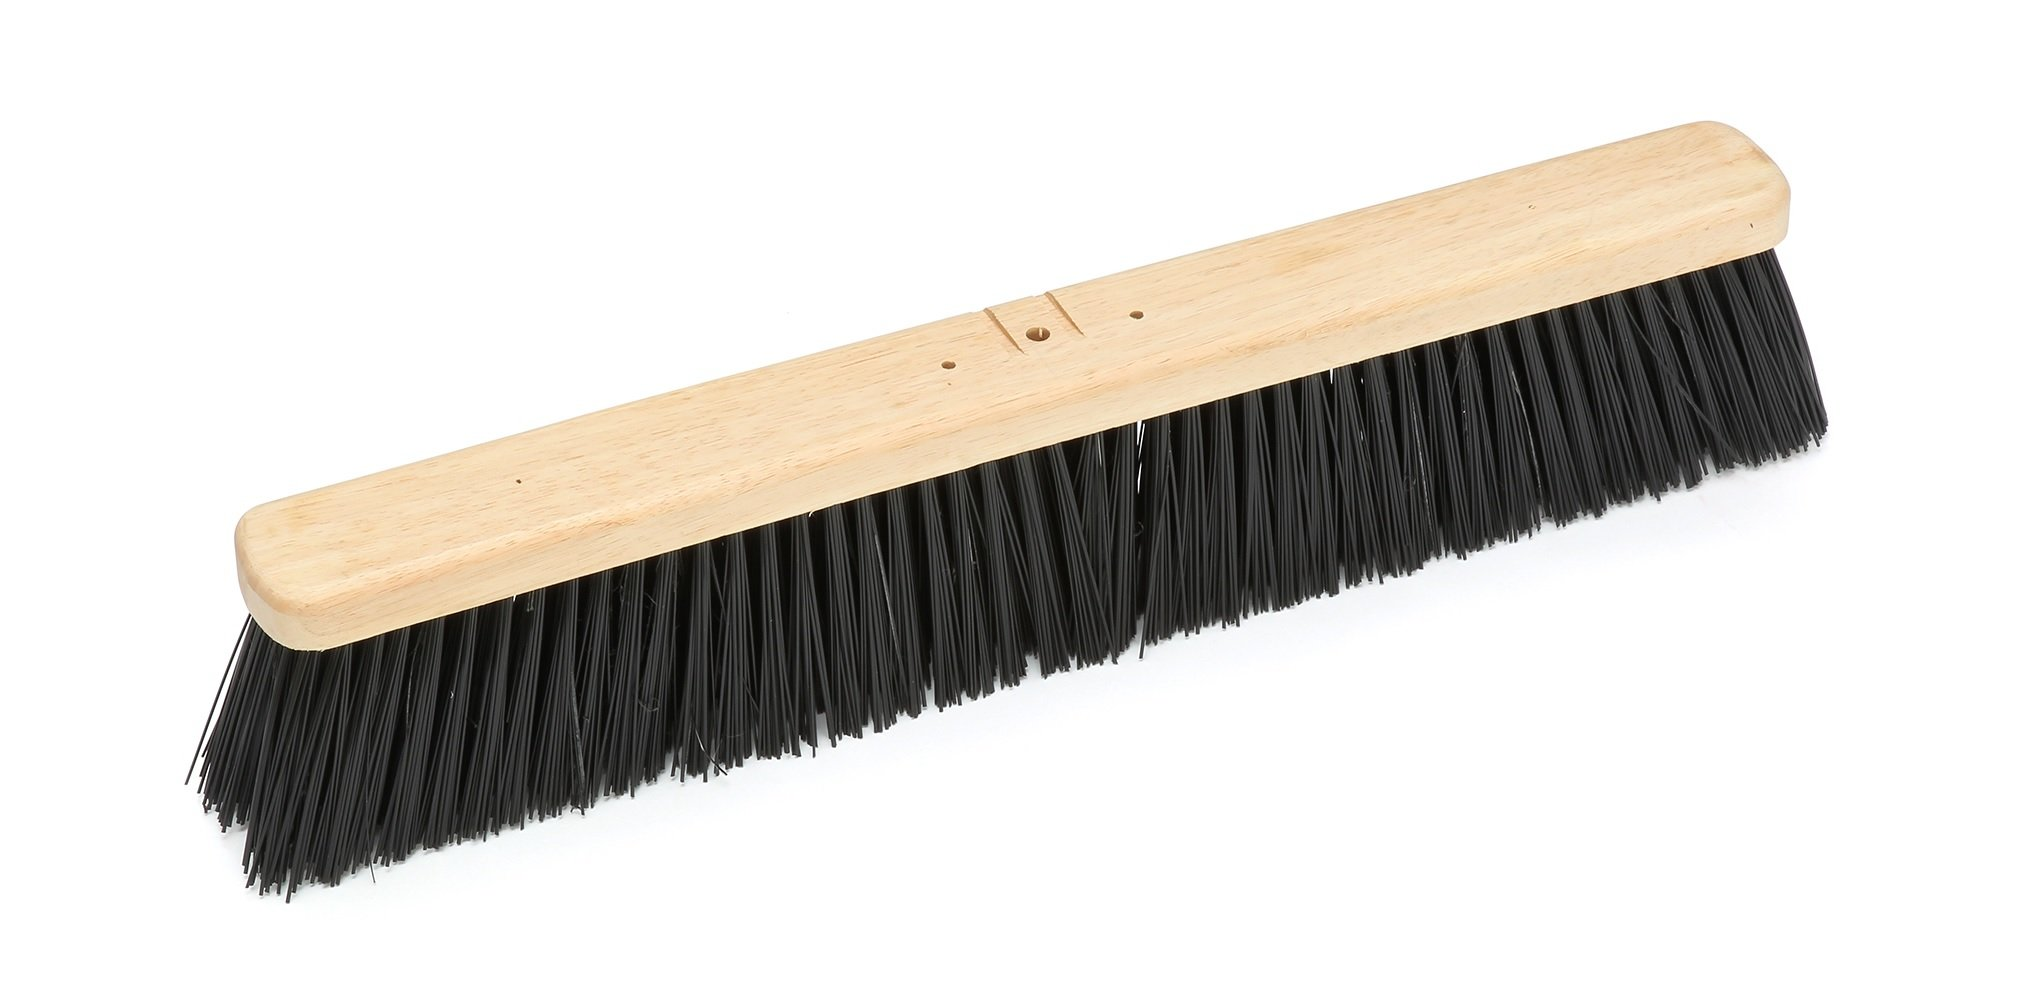 Harper Brush 143512 Broom Head, Polypropylene Fiber, Outdoor, Rough Wet or Dry Surface, Hard Wood, 24'' (Pack of 6)